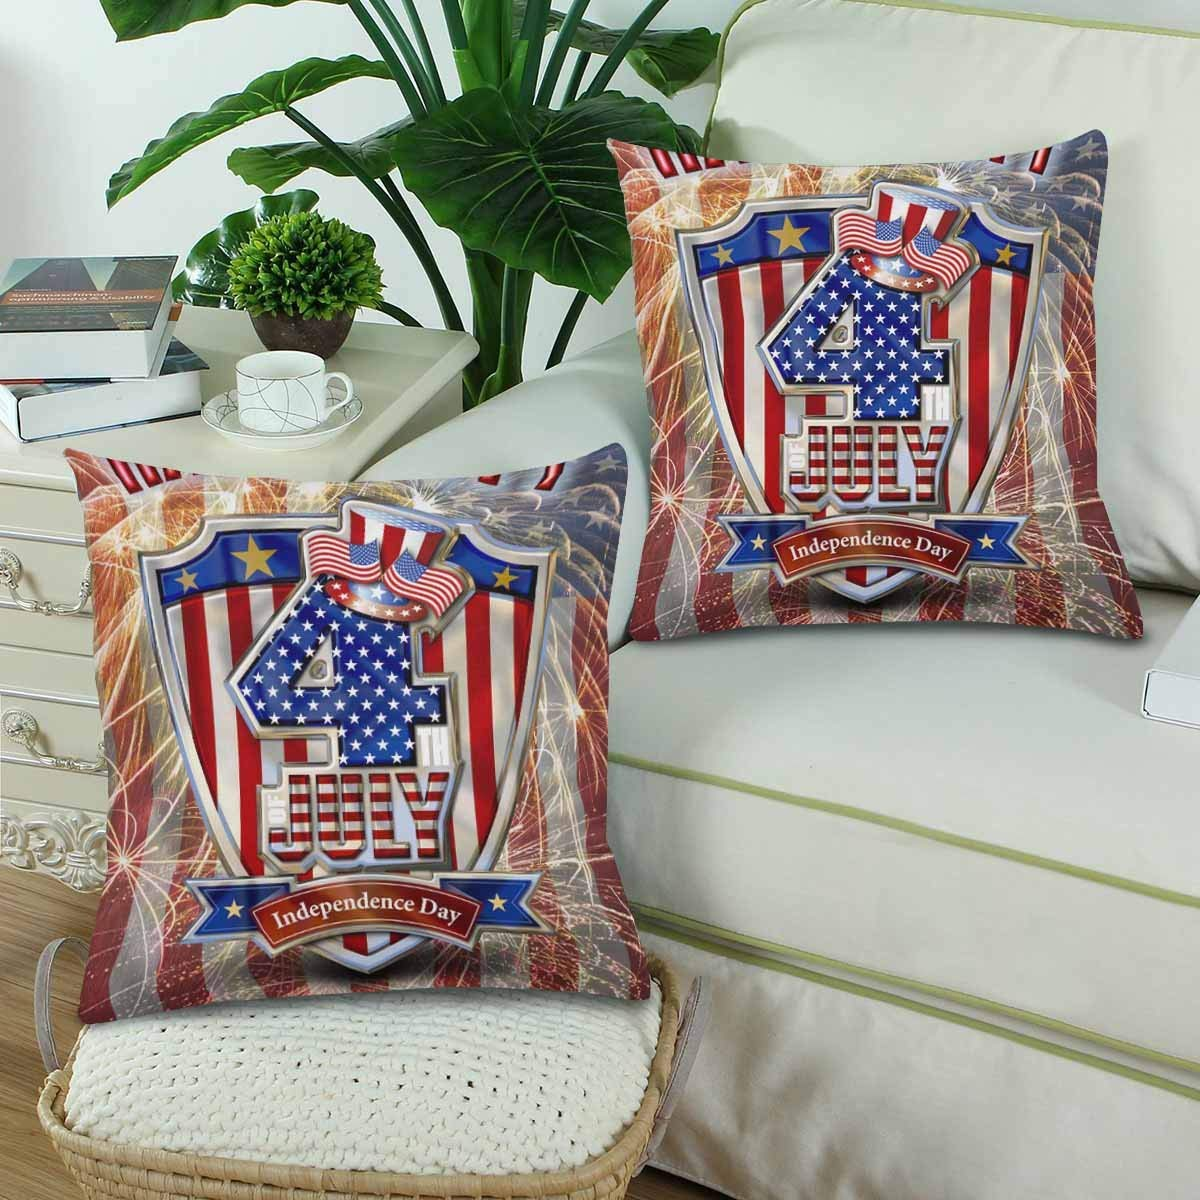 GCKG Happy 4th of July Fireworks Stars Stripe Flag Pillowcase Throw Pillow Covers 18x18 inches Set of 2 - image 1 of 3